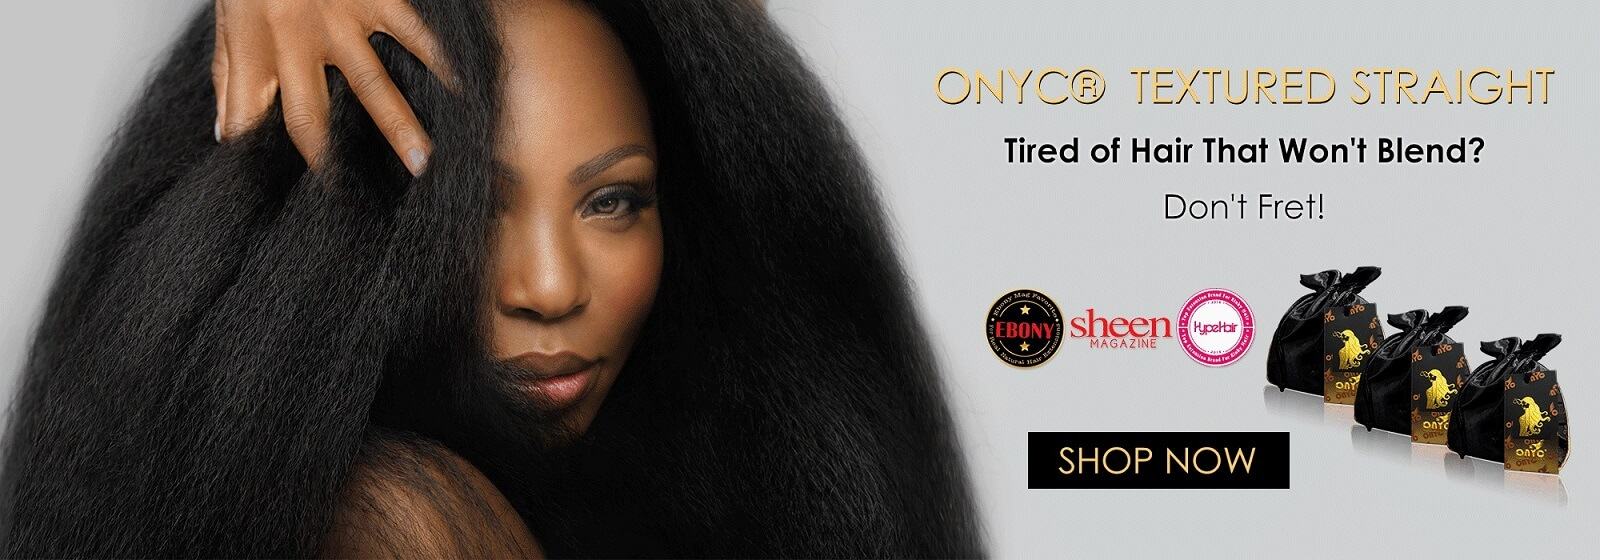 Textured Straight Look. NO 1 Hair Extensions Shop for Virgin Hair! Black-Owned Company, Hair Brand for Best Natural Hair Extensions to match all Hair Types.